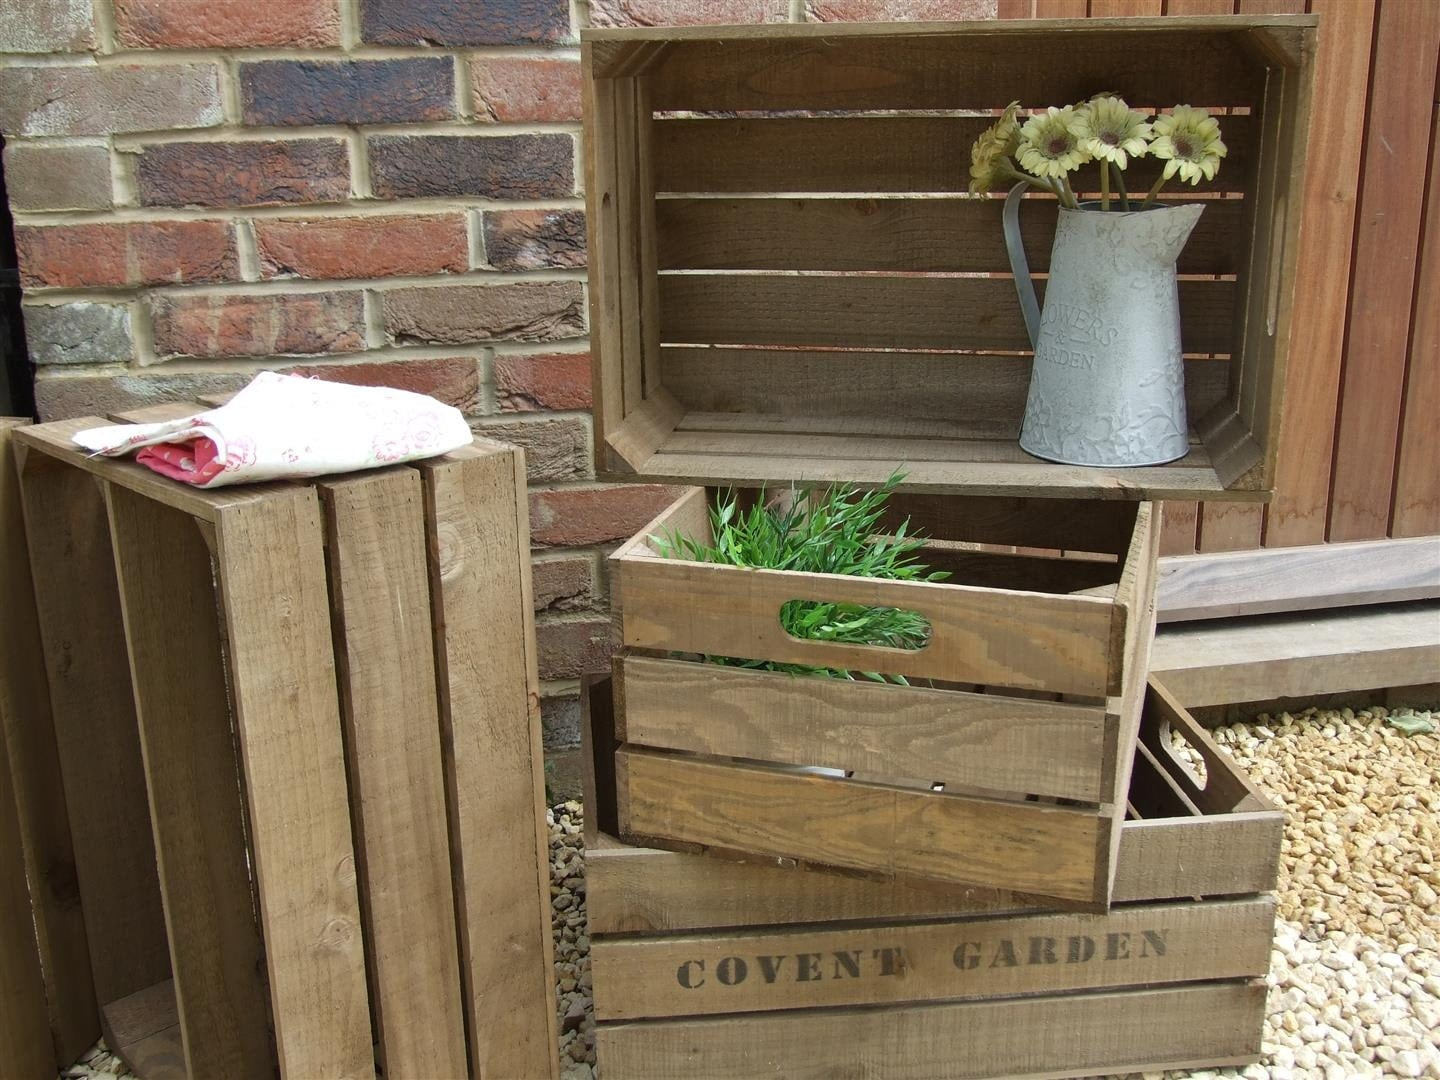 Vintage style wooden apple crate shabby chic fruit crate for Used apple crates